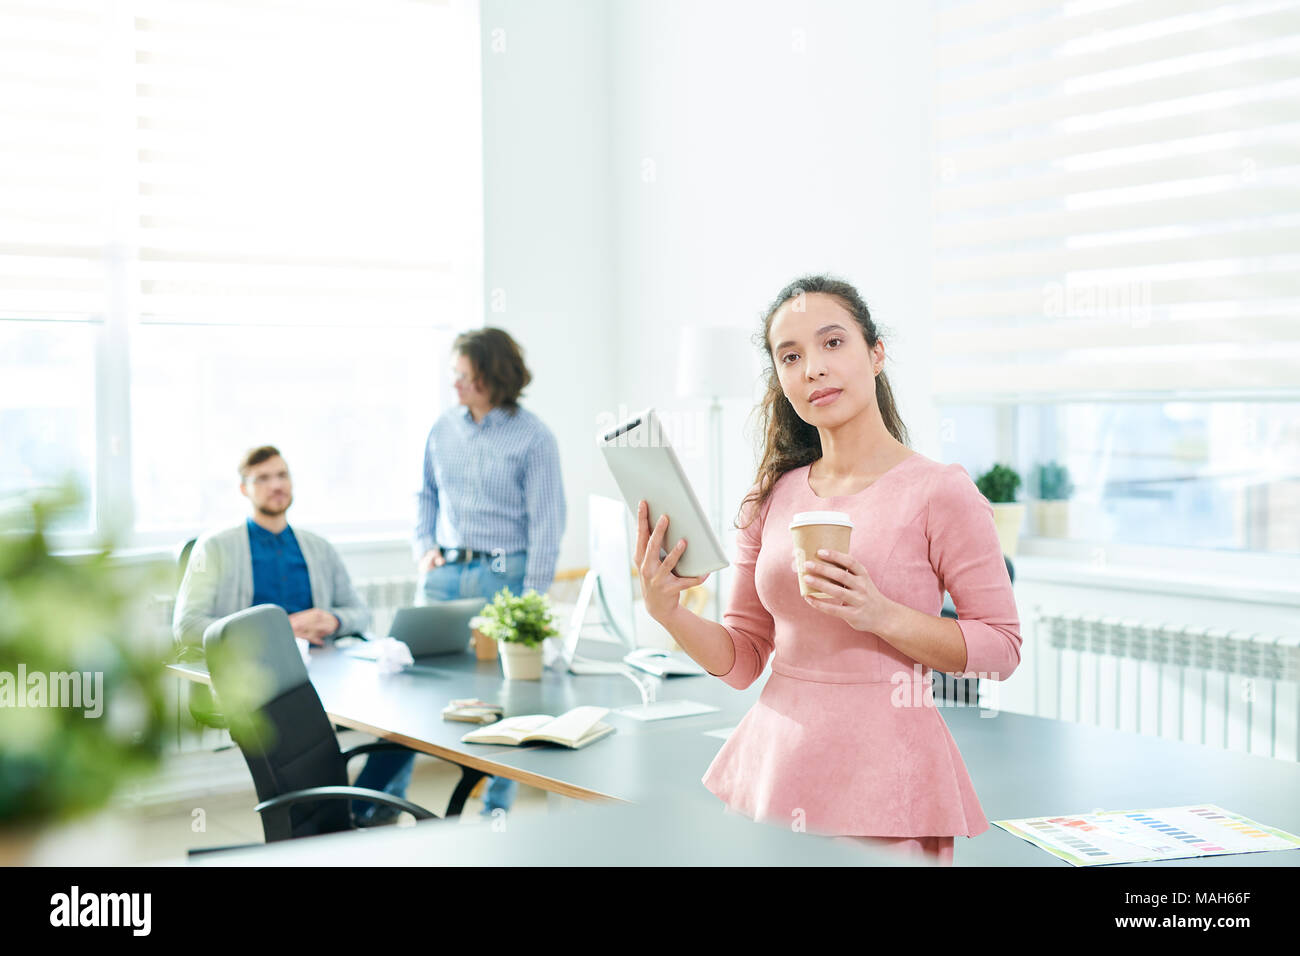 Modern business lady with device - Stock Image